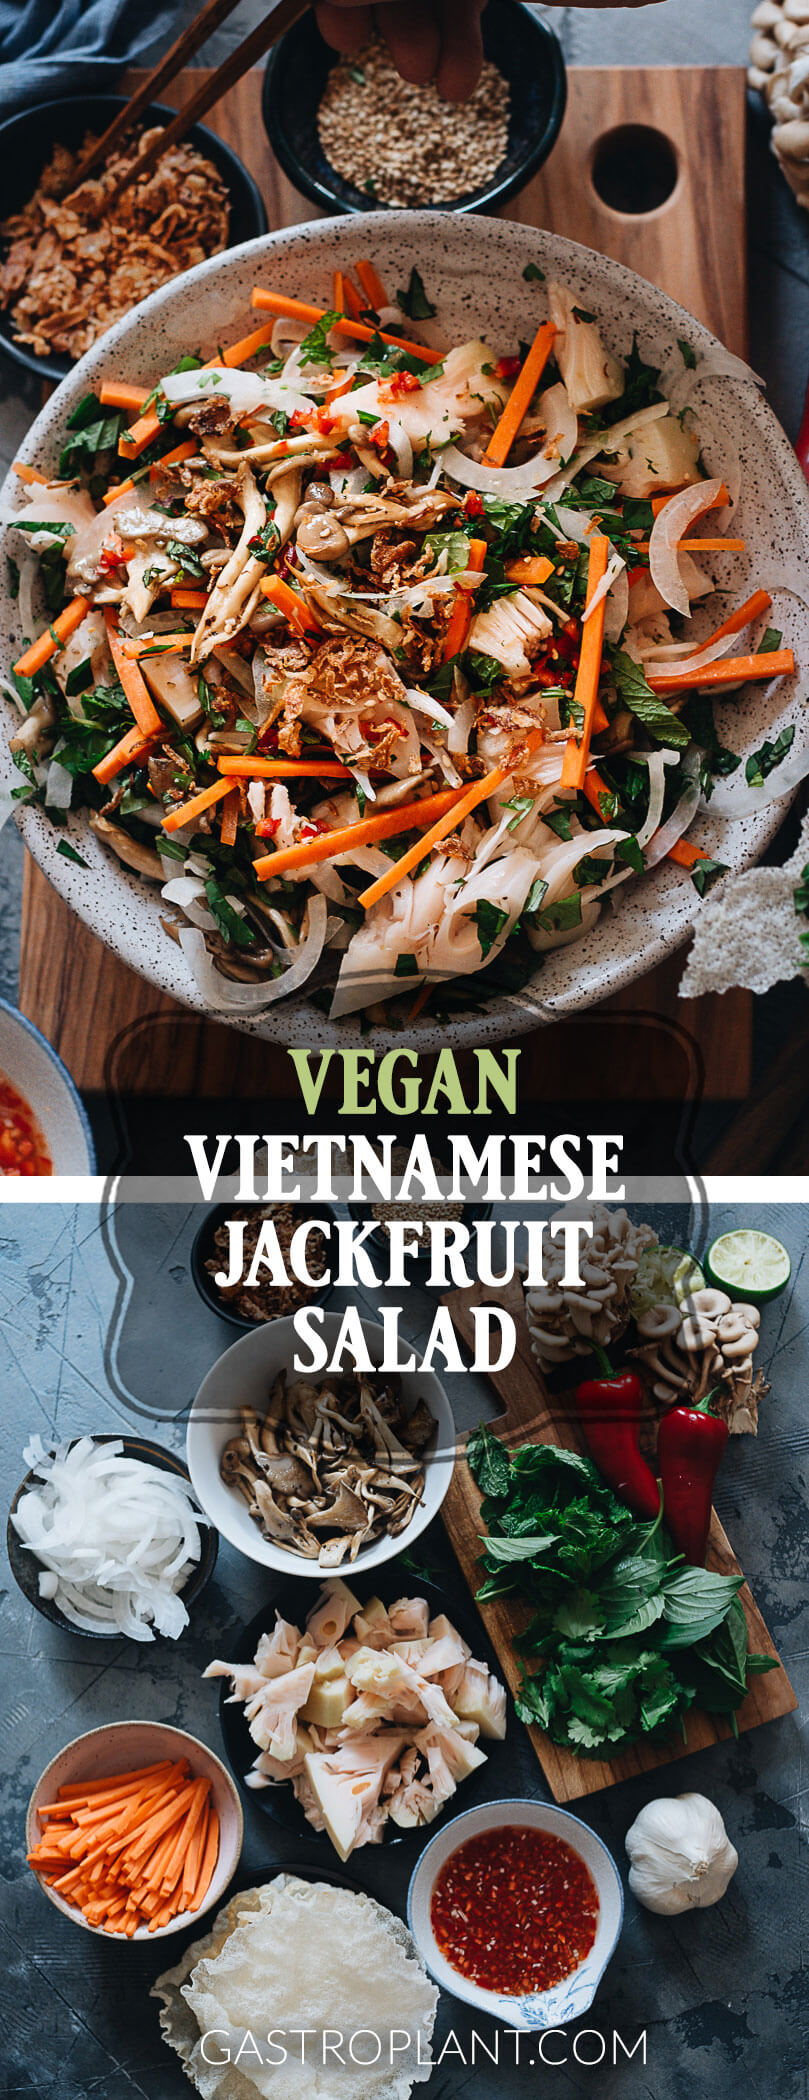 Easy Healthy Vegan Vietnamese Jackfruit Salad Collage